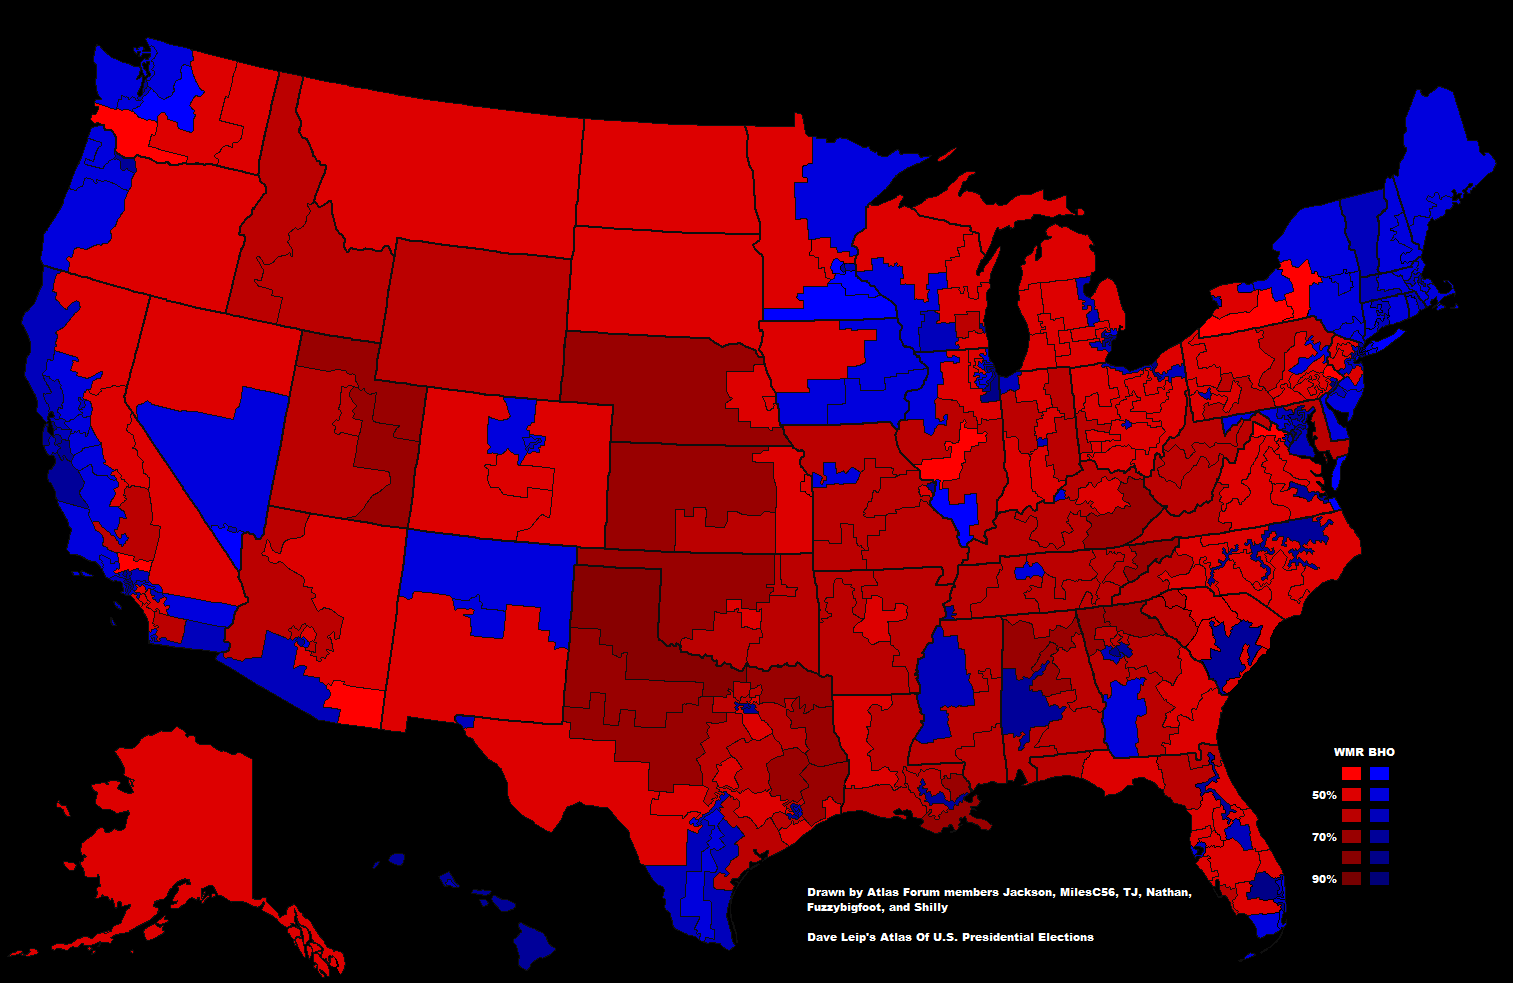 the 2012 presidential election in the united states The united states presidential election, 2012 is a political event which took place on november 6, 2012 during that day the president of the united states and vice president of the united states were selected.